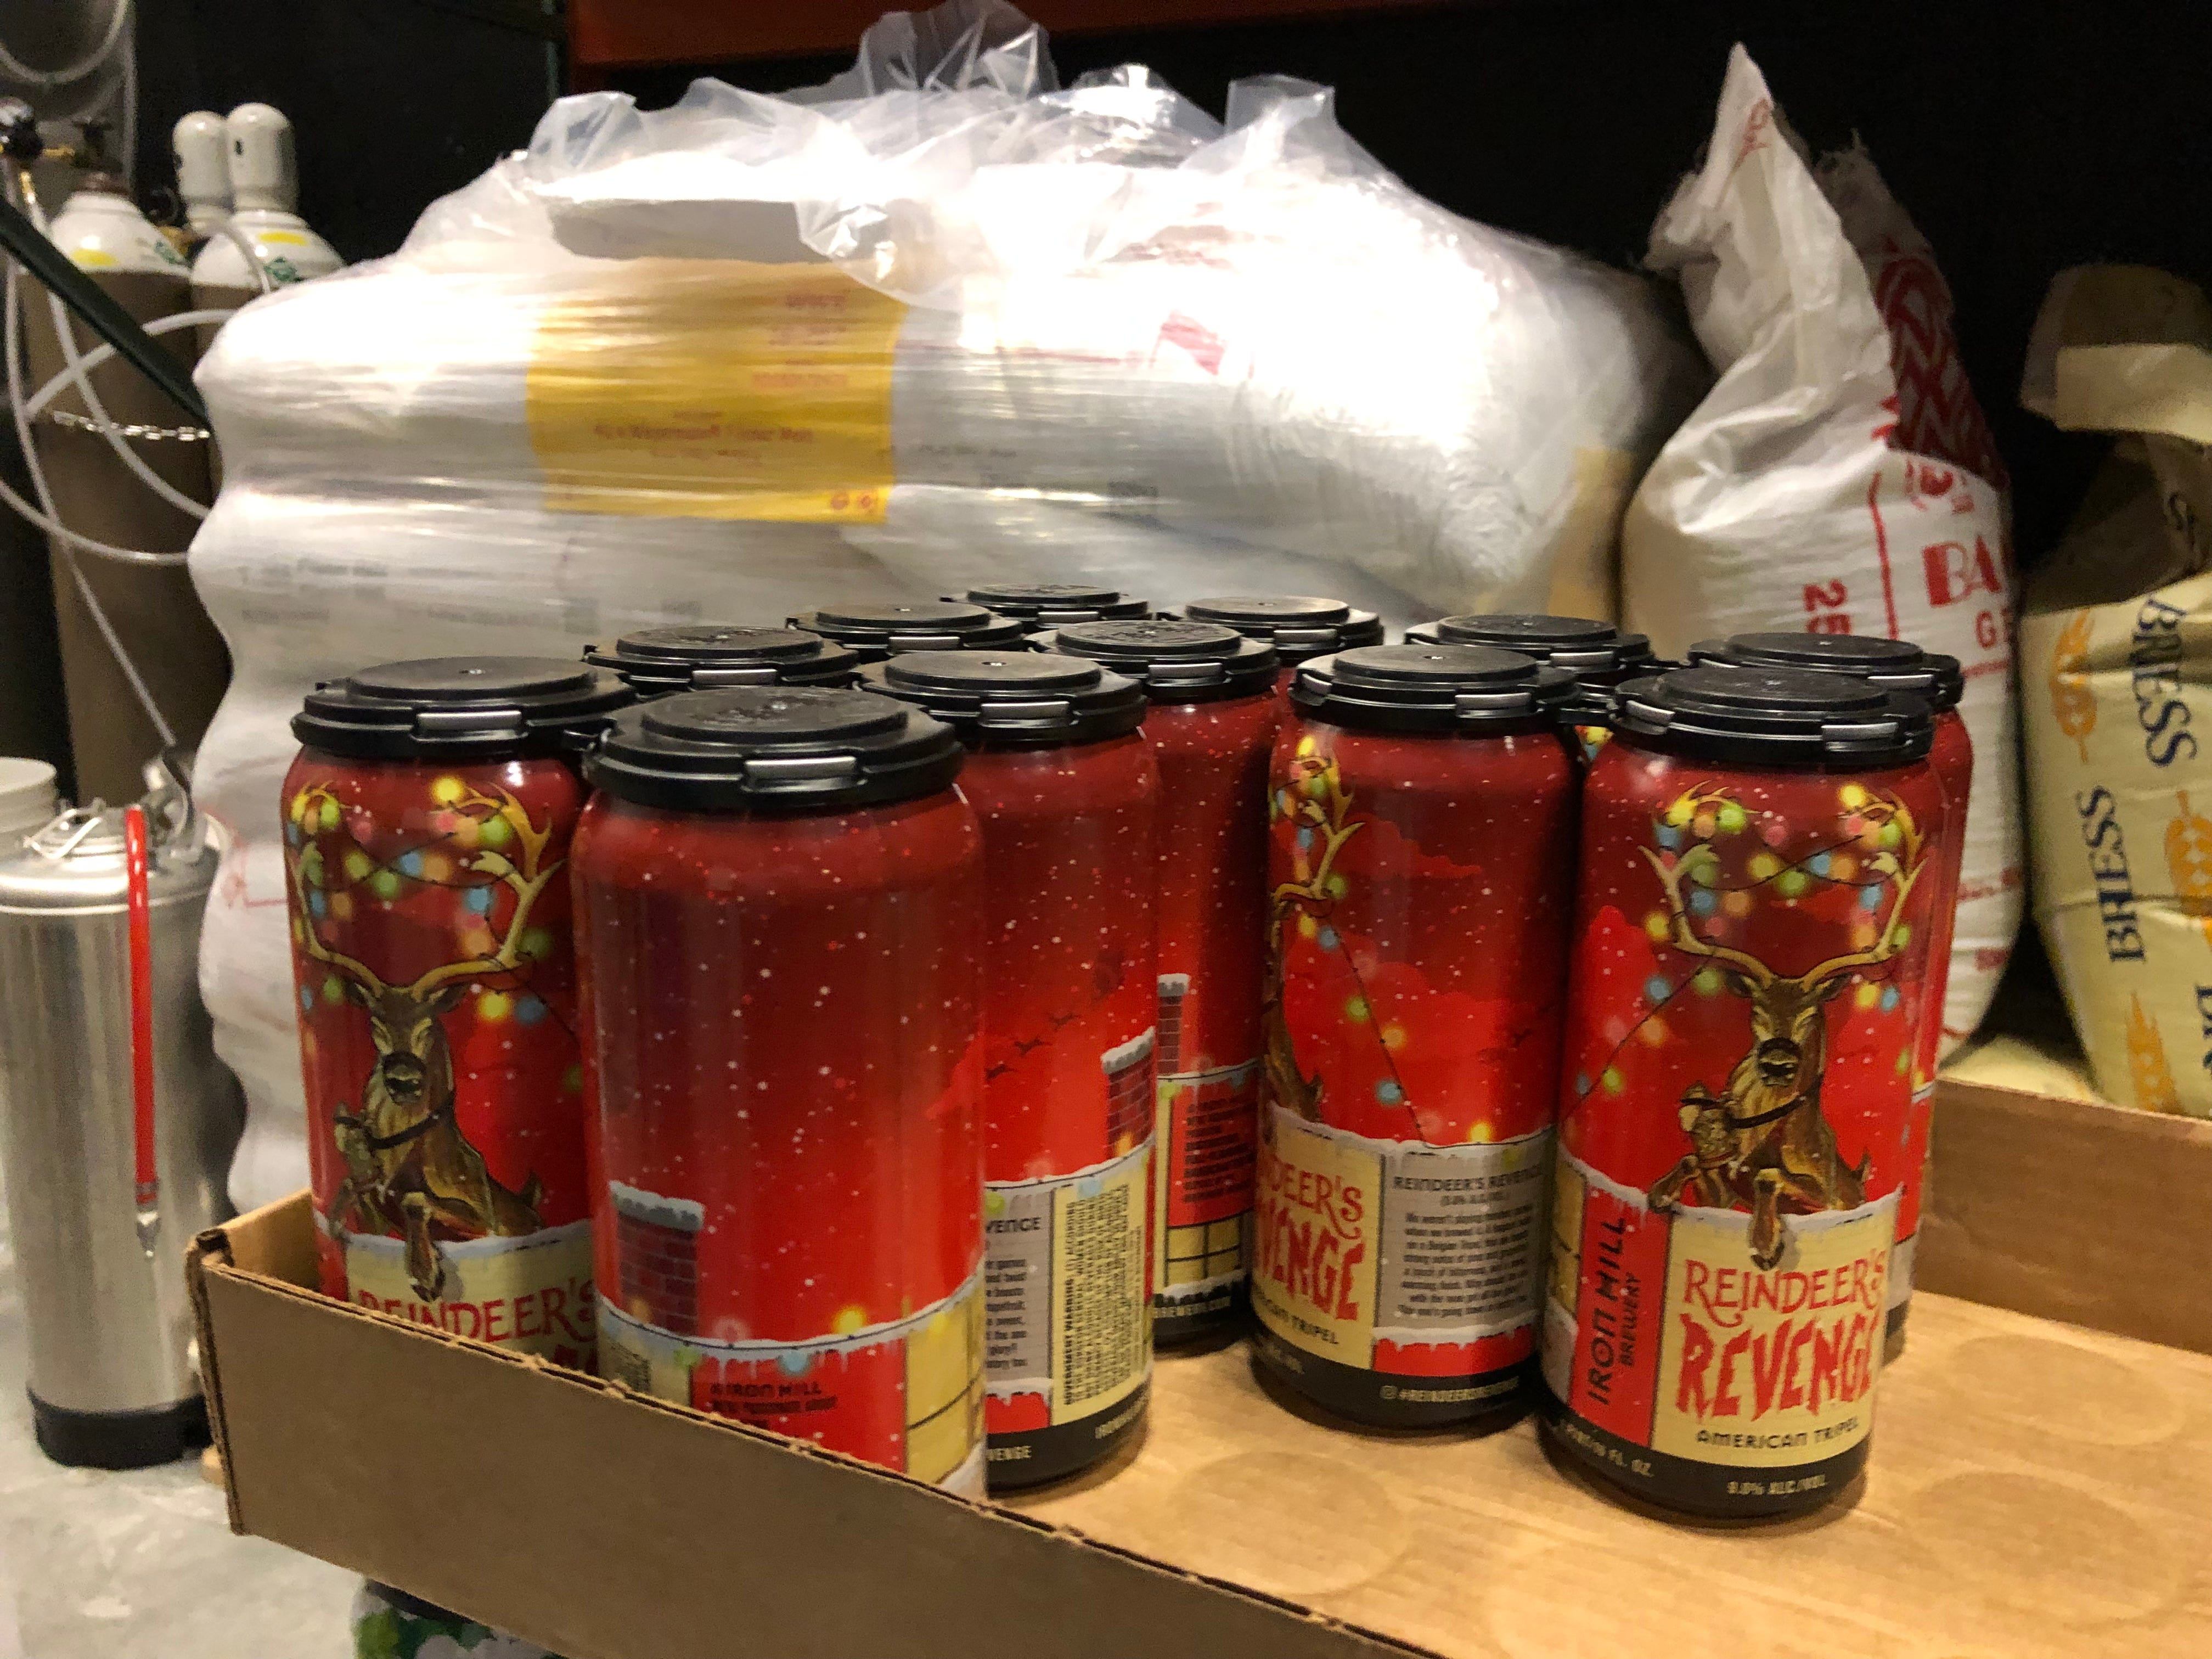 Reindeer's Revenge is a great seasonal beer currently on tap and in cans at Iron Hill Brewery & Restaurant in Hershey.